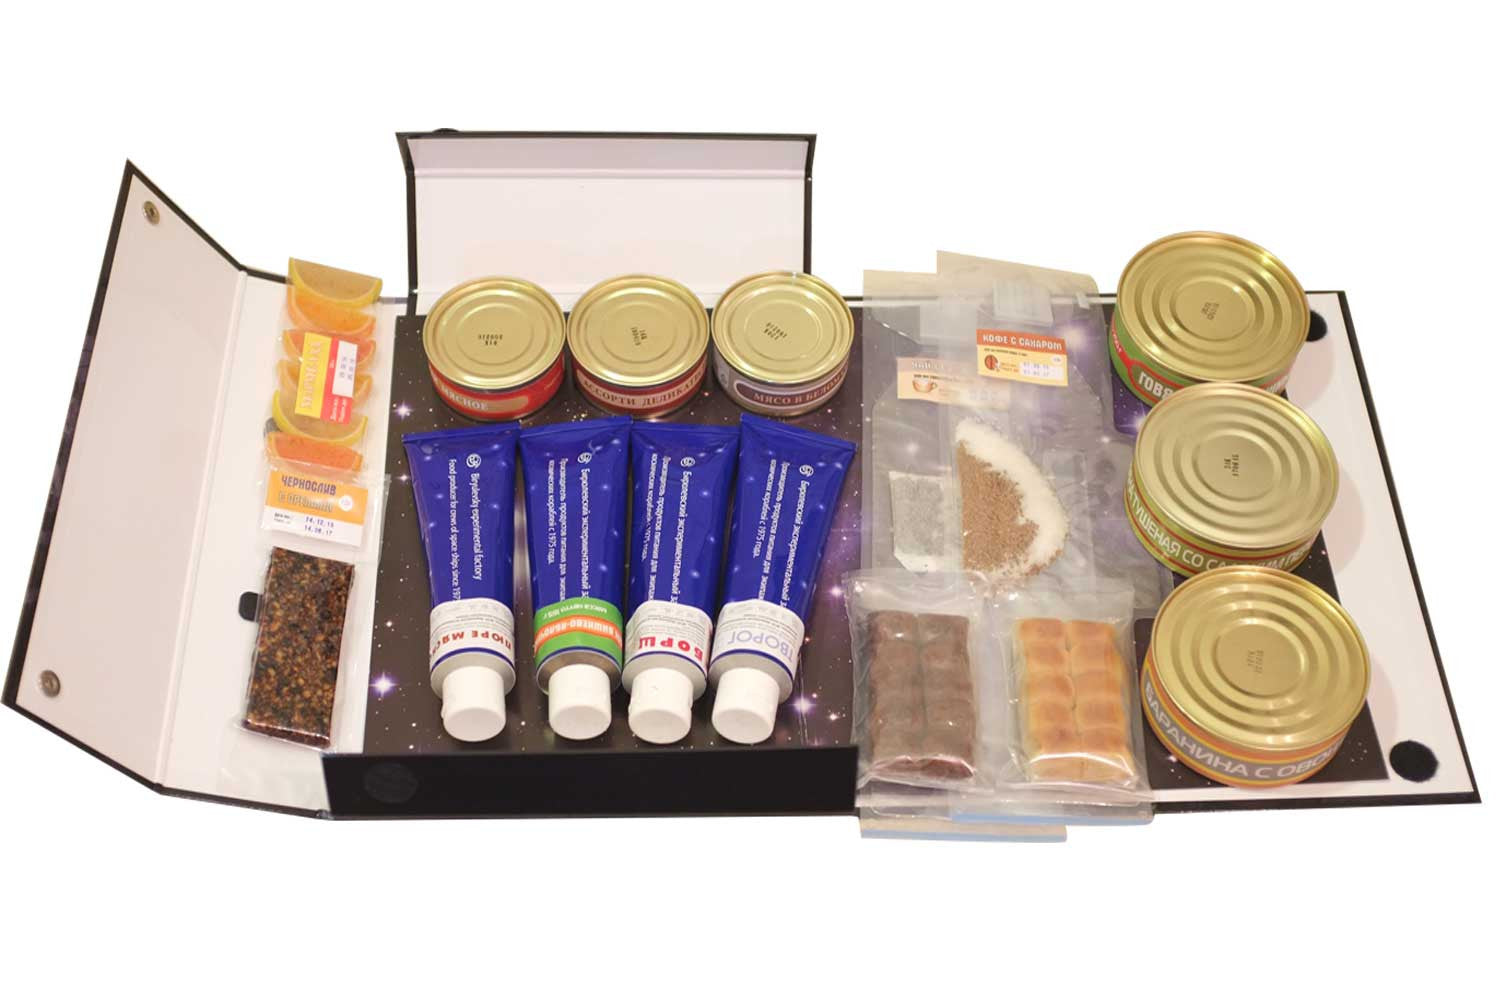 Astronaut space food for sale buy space food food for for Home made product for sale